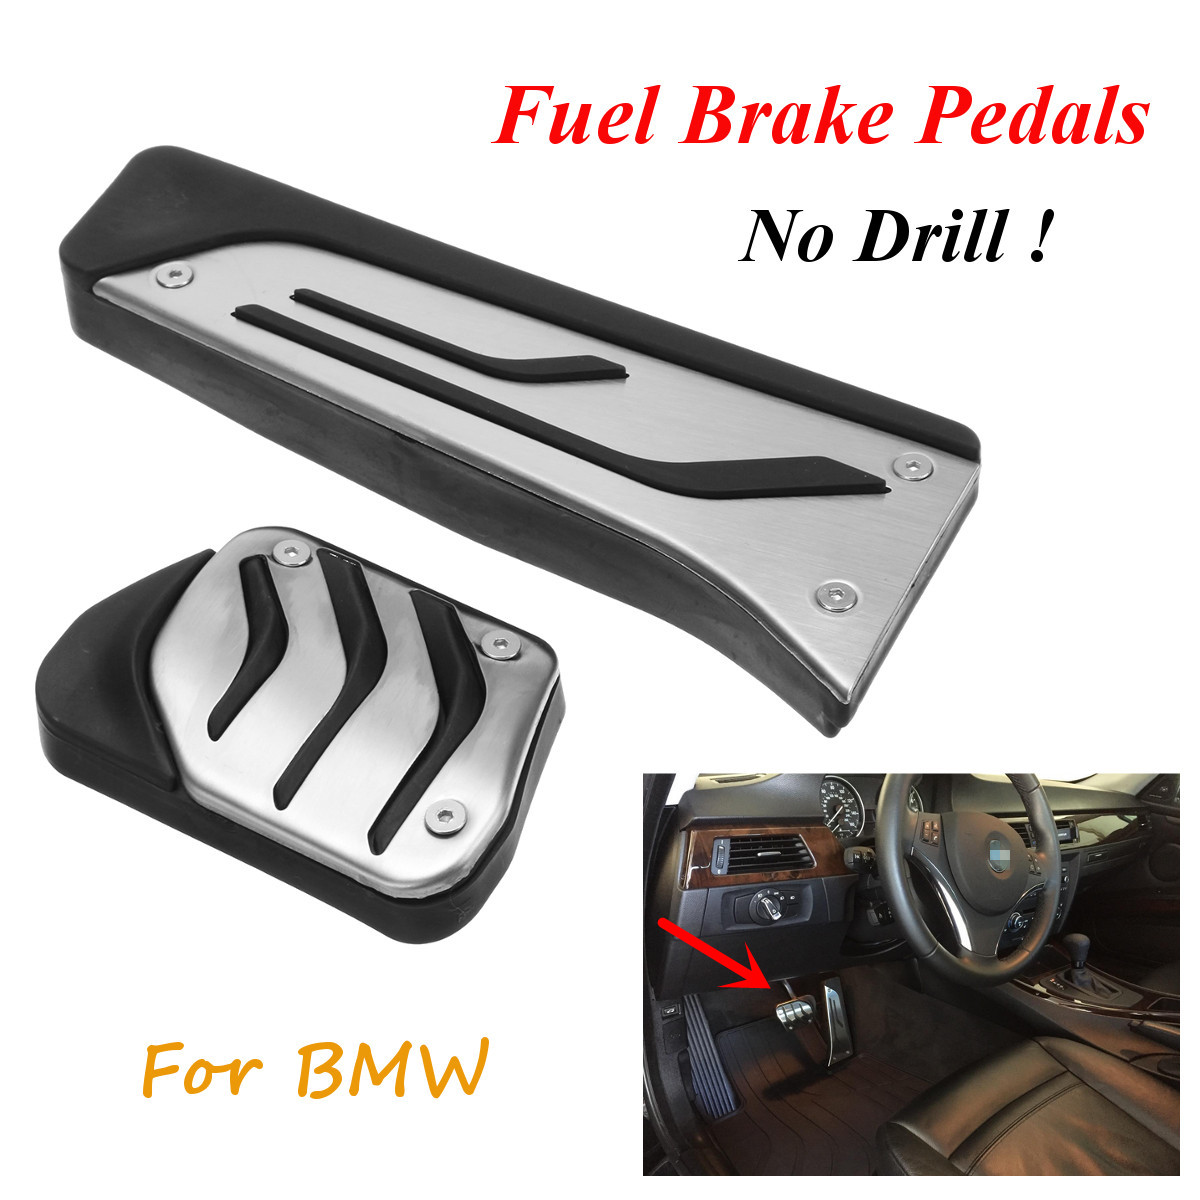 2 X No Drill Anti-slip Stainless Steel Fuel Brake Foot Pad Pedal Cover For BMW